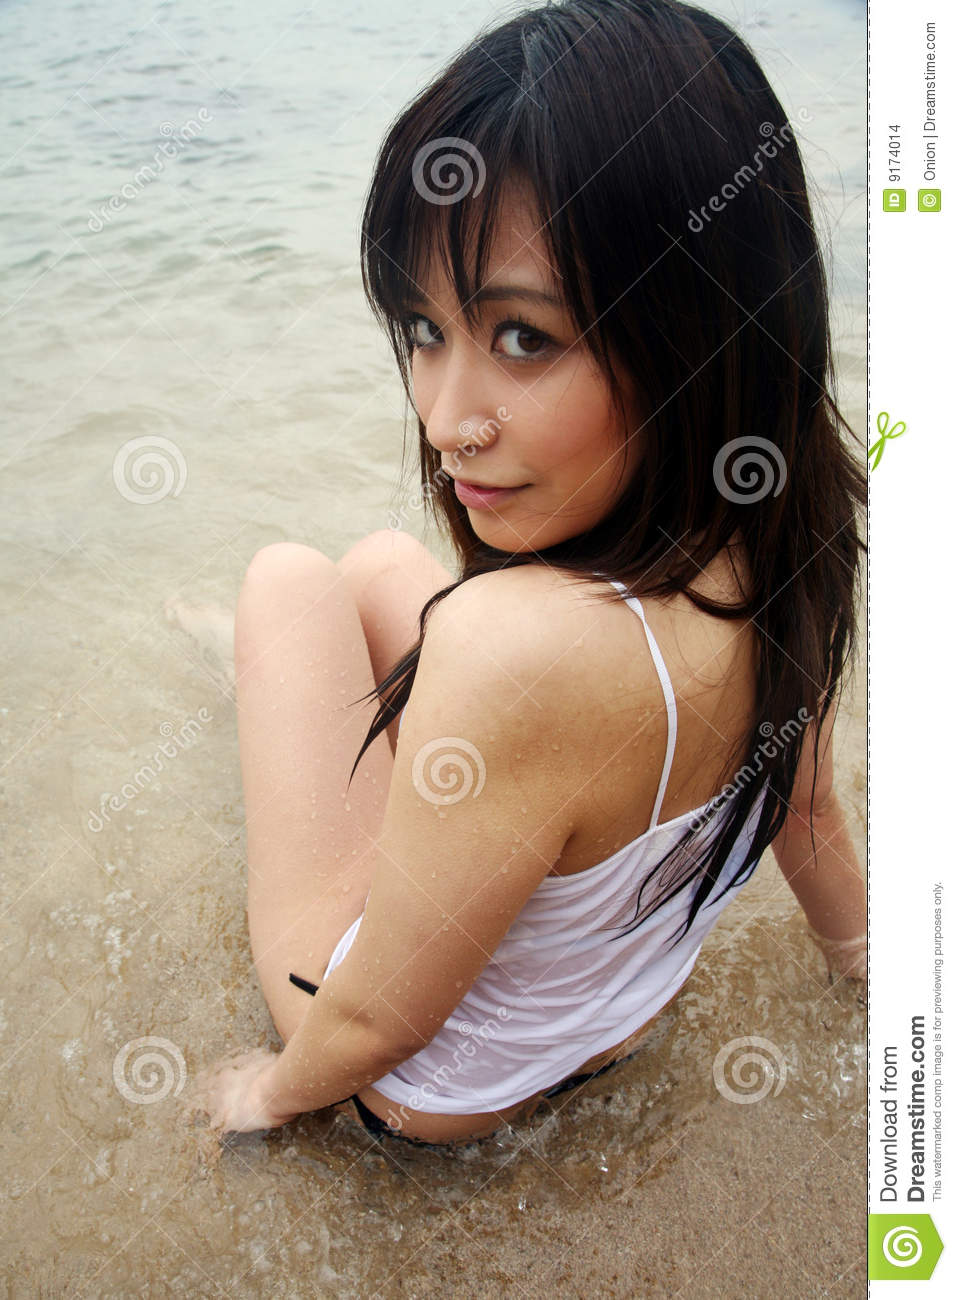 And By beautiful asian woman must planned retire